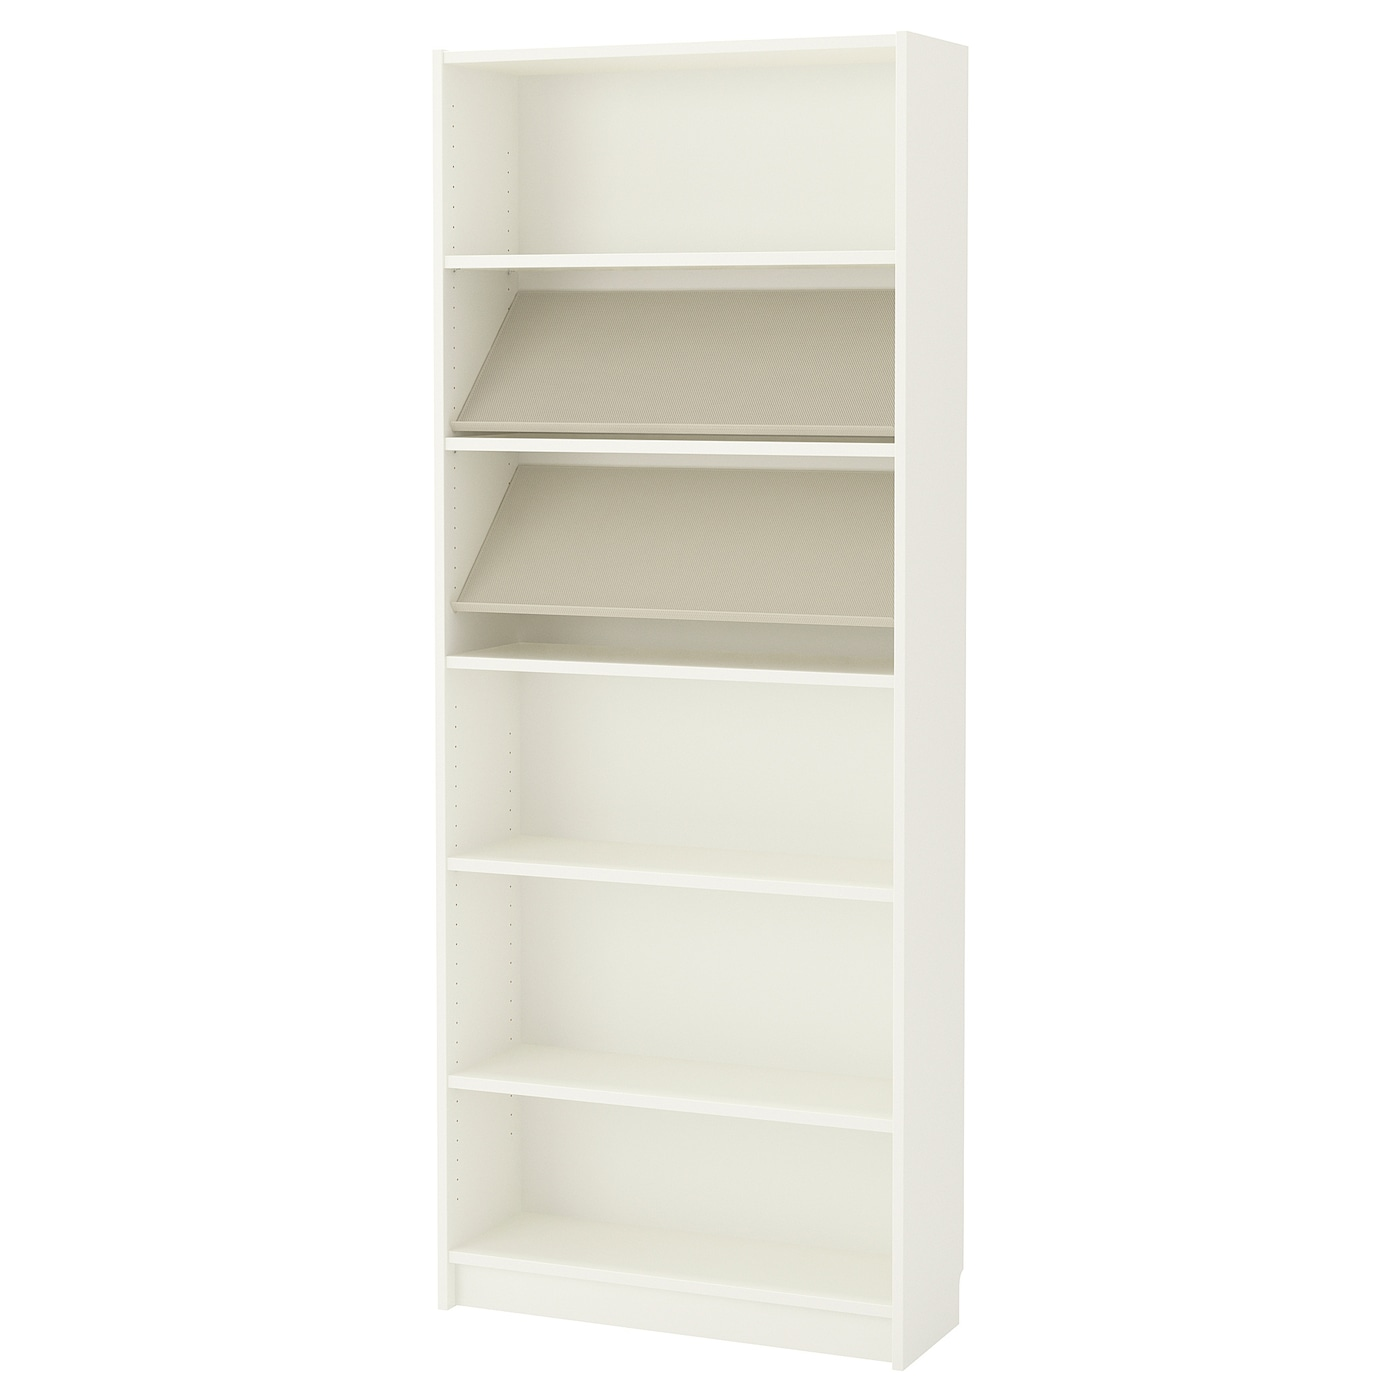 IKEA BILLY/BOTTNA bookcase with display shelf